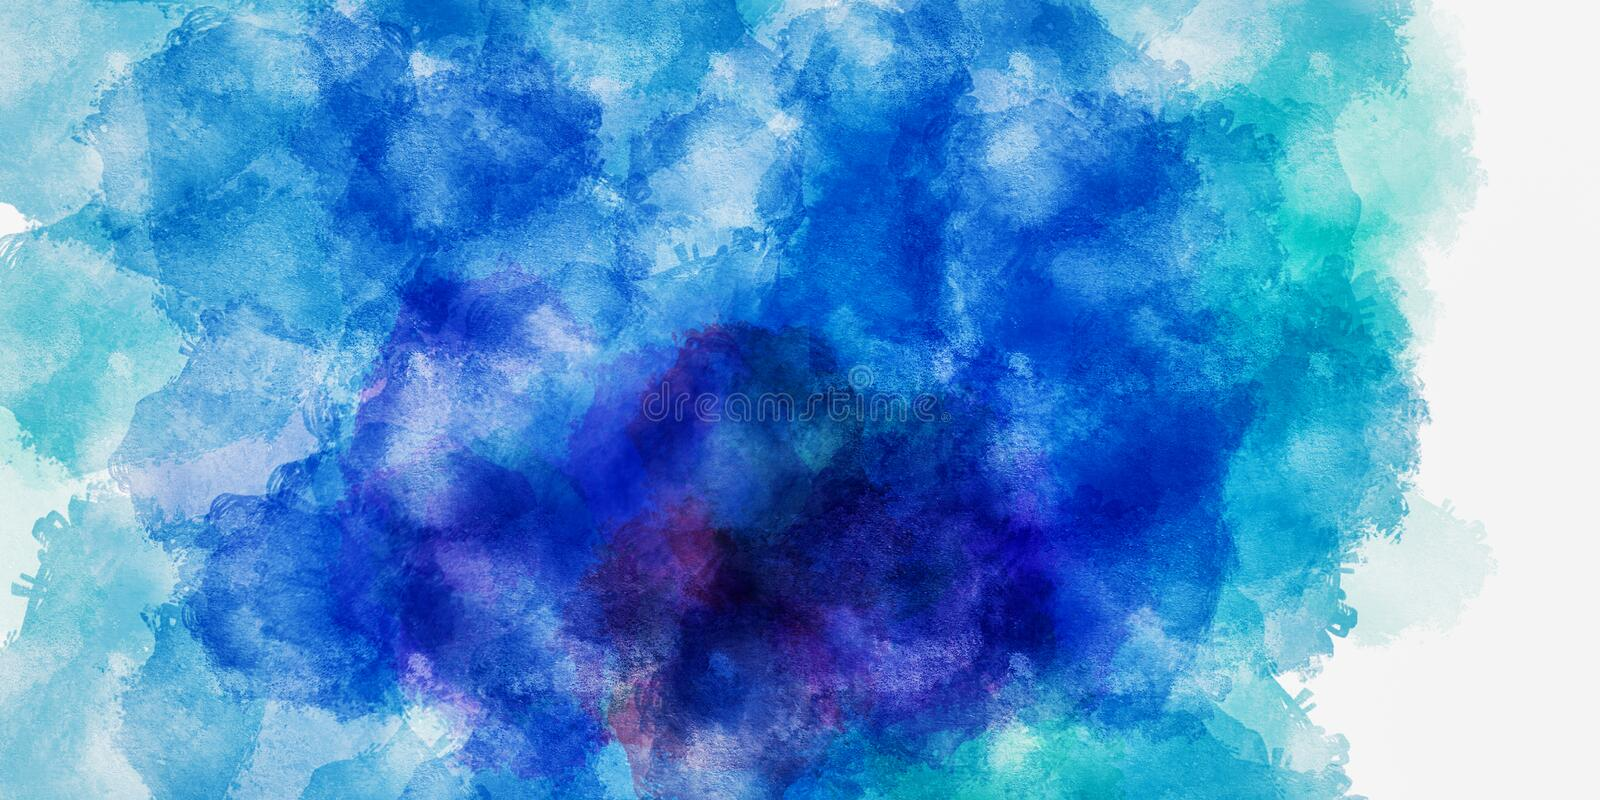 The Colorful watercolor abstract pattern background. Illustration vector illustration